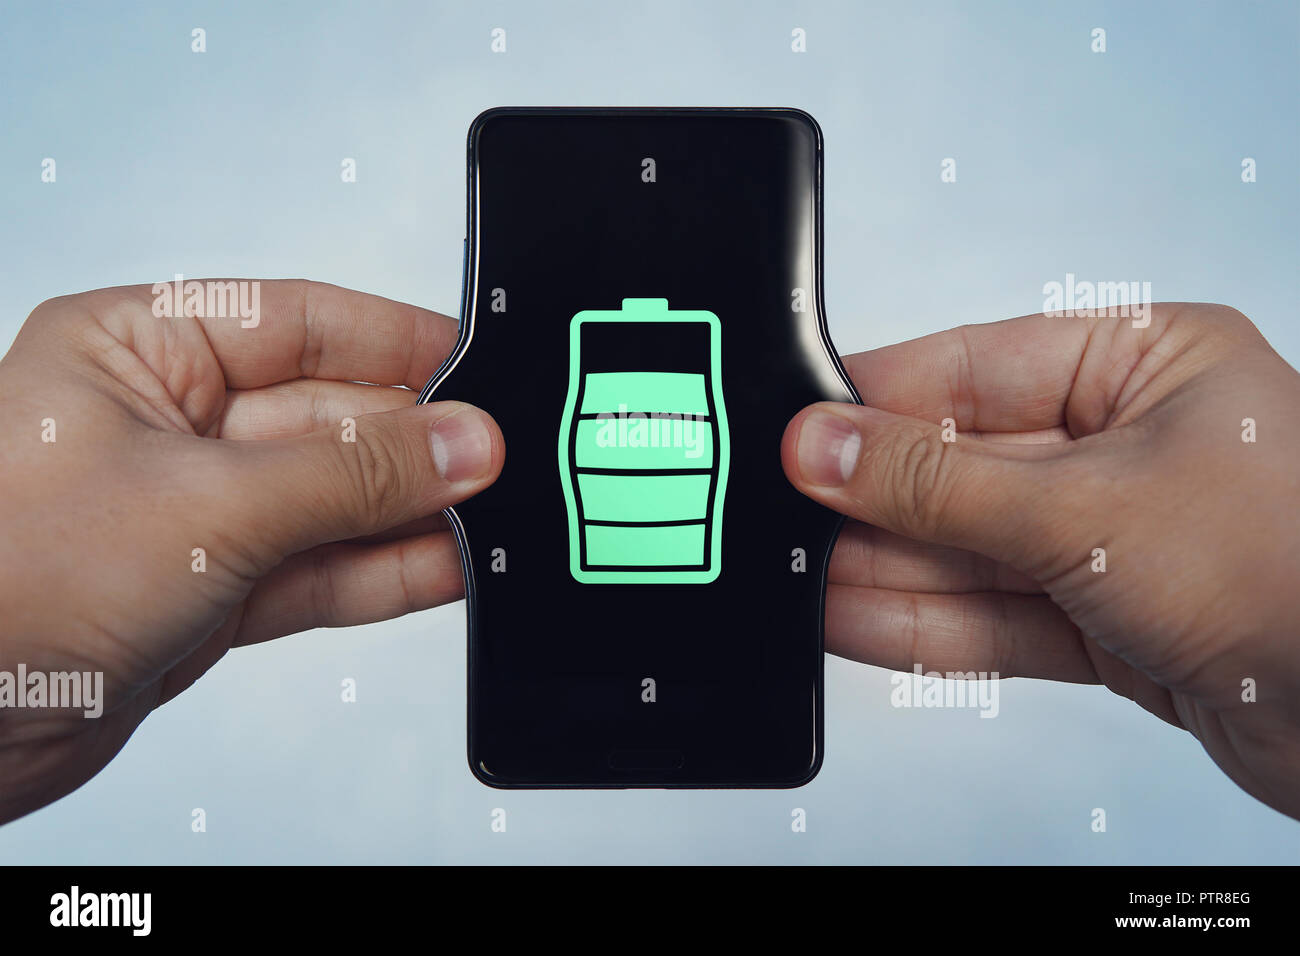 how to increase the performance of the smartphone, increase the battery level, stretch the phone, a man stretches the phone with his hands - Stock Image